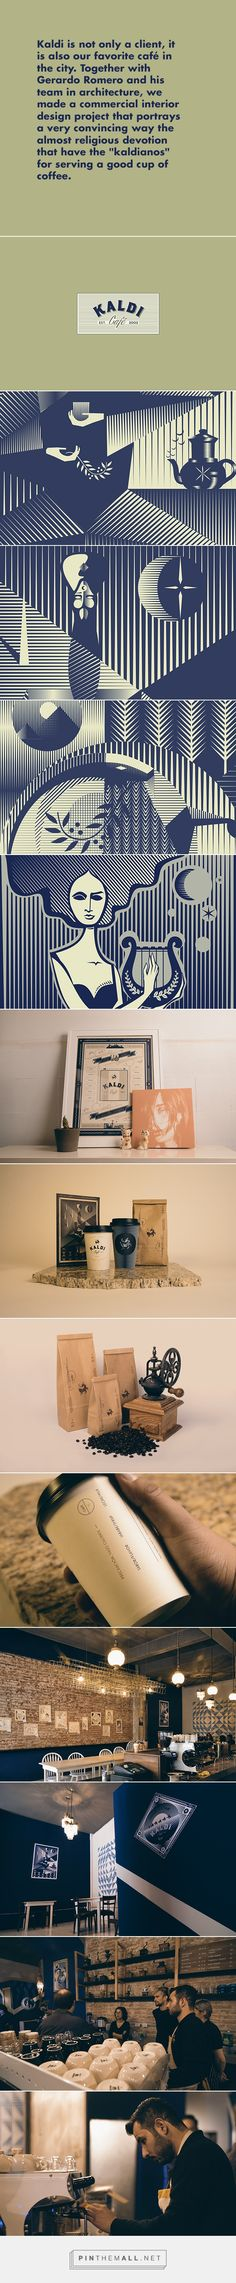 Kaldi identity packaging branding by yy on Behance. Who's ready for a cup of coffee now? created via https://www.behance.net/gallery/19143465/Kaldi-